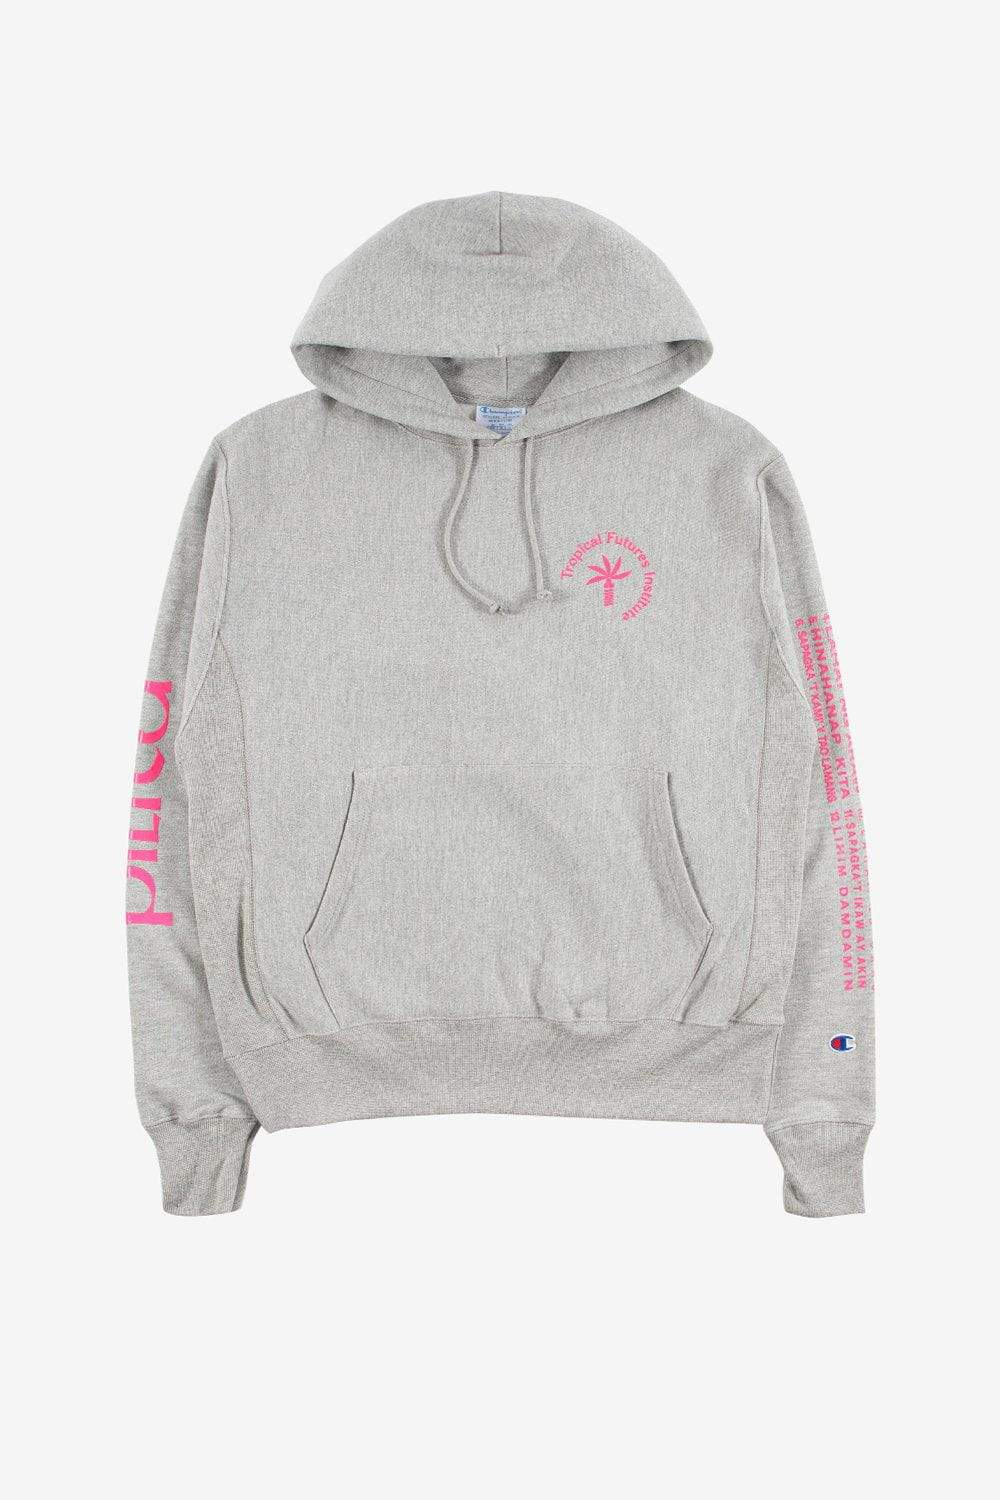 Tropical Futures Apparel Philippine Love Songs Hoodie